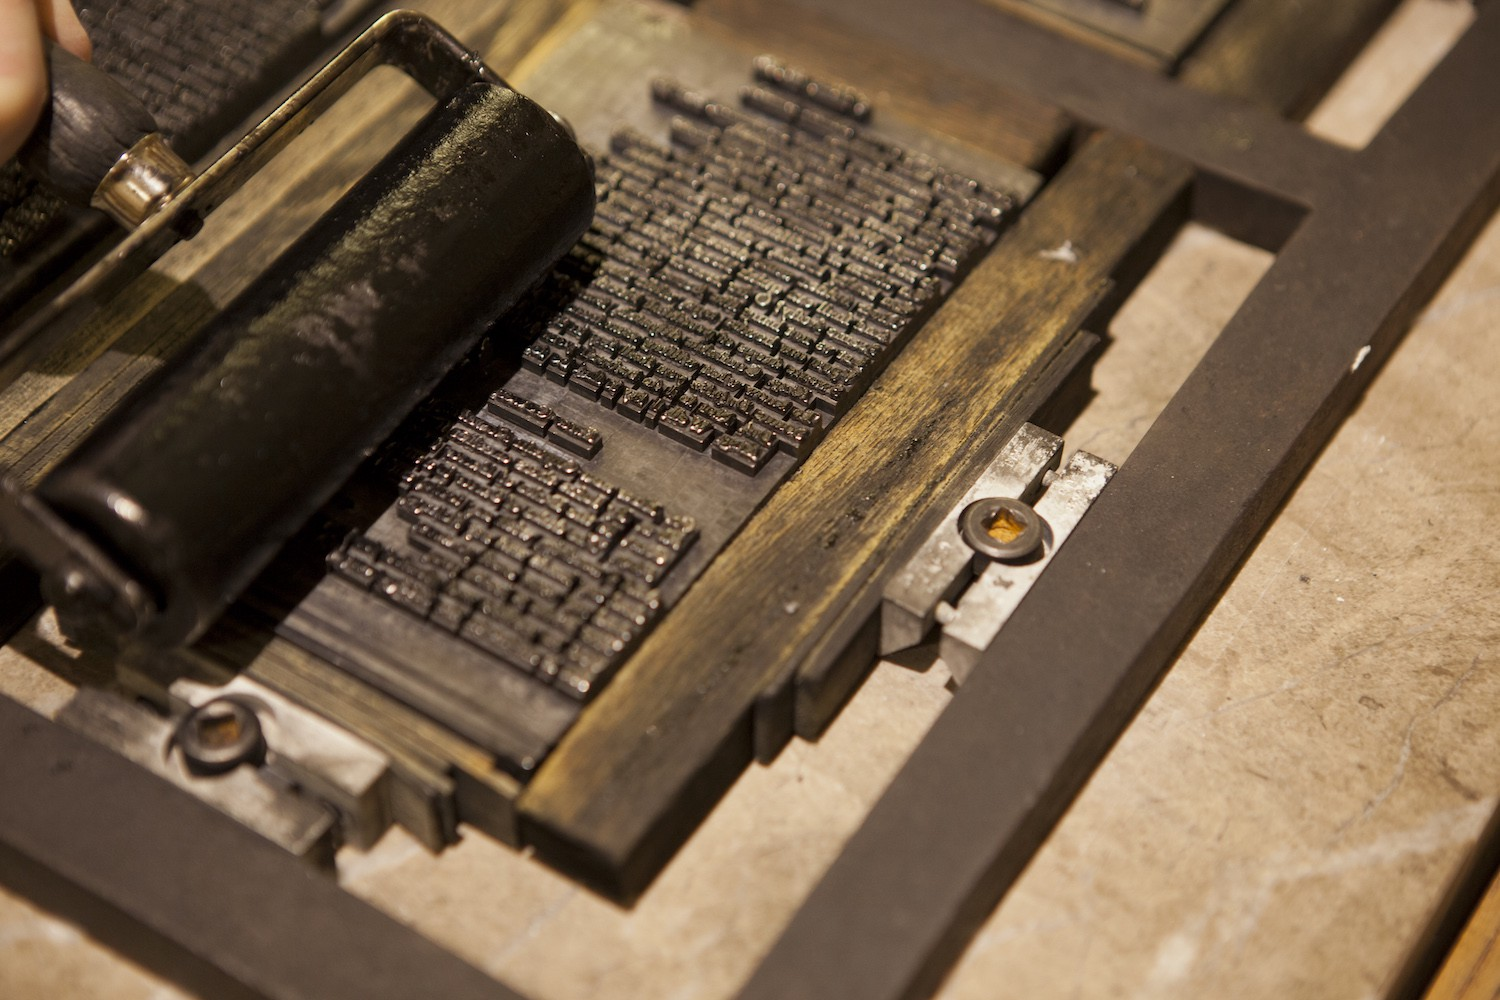 An ink roller running across a template of letters